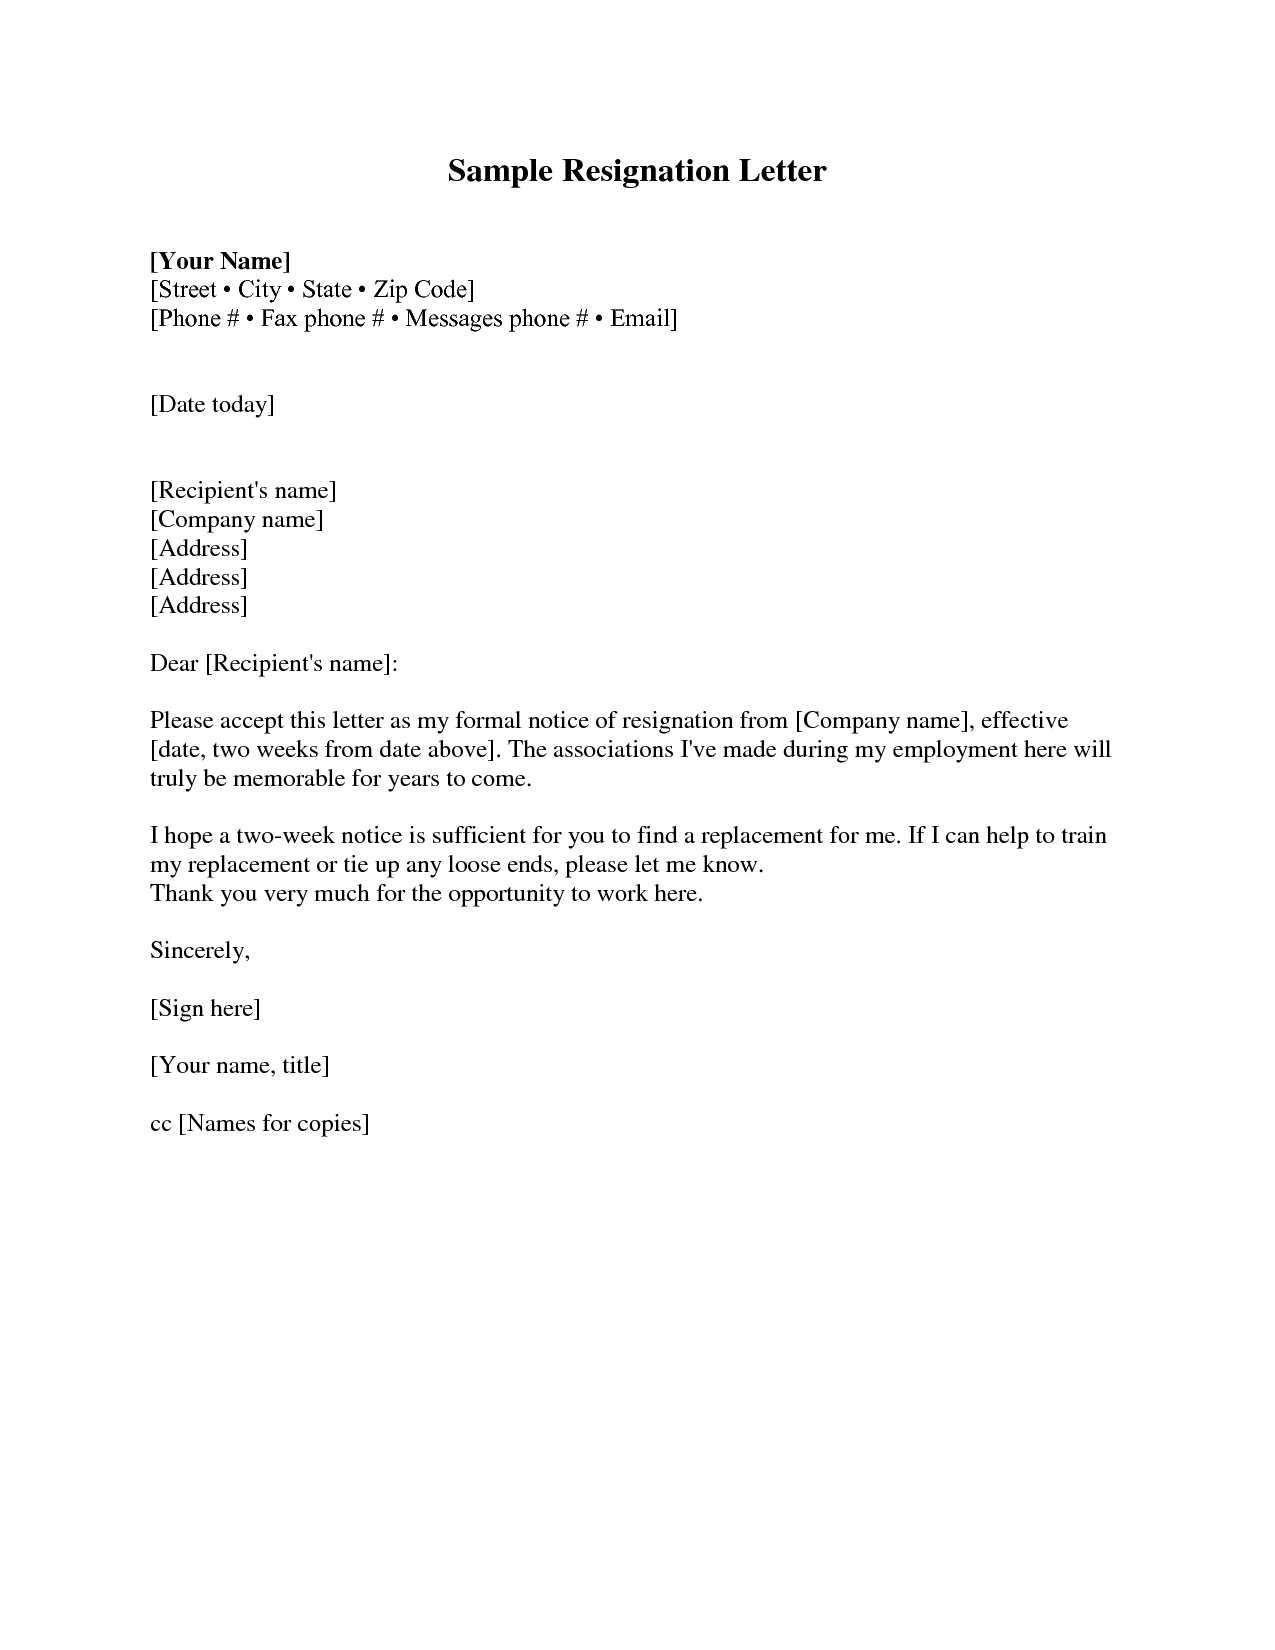 Resignation Letter Sample 2 Weeks Notice | Free2IMG.com